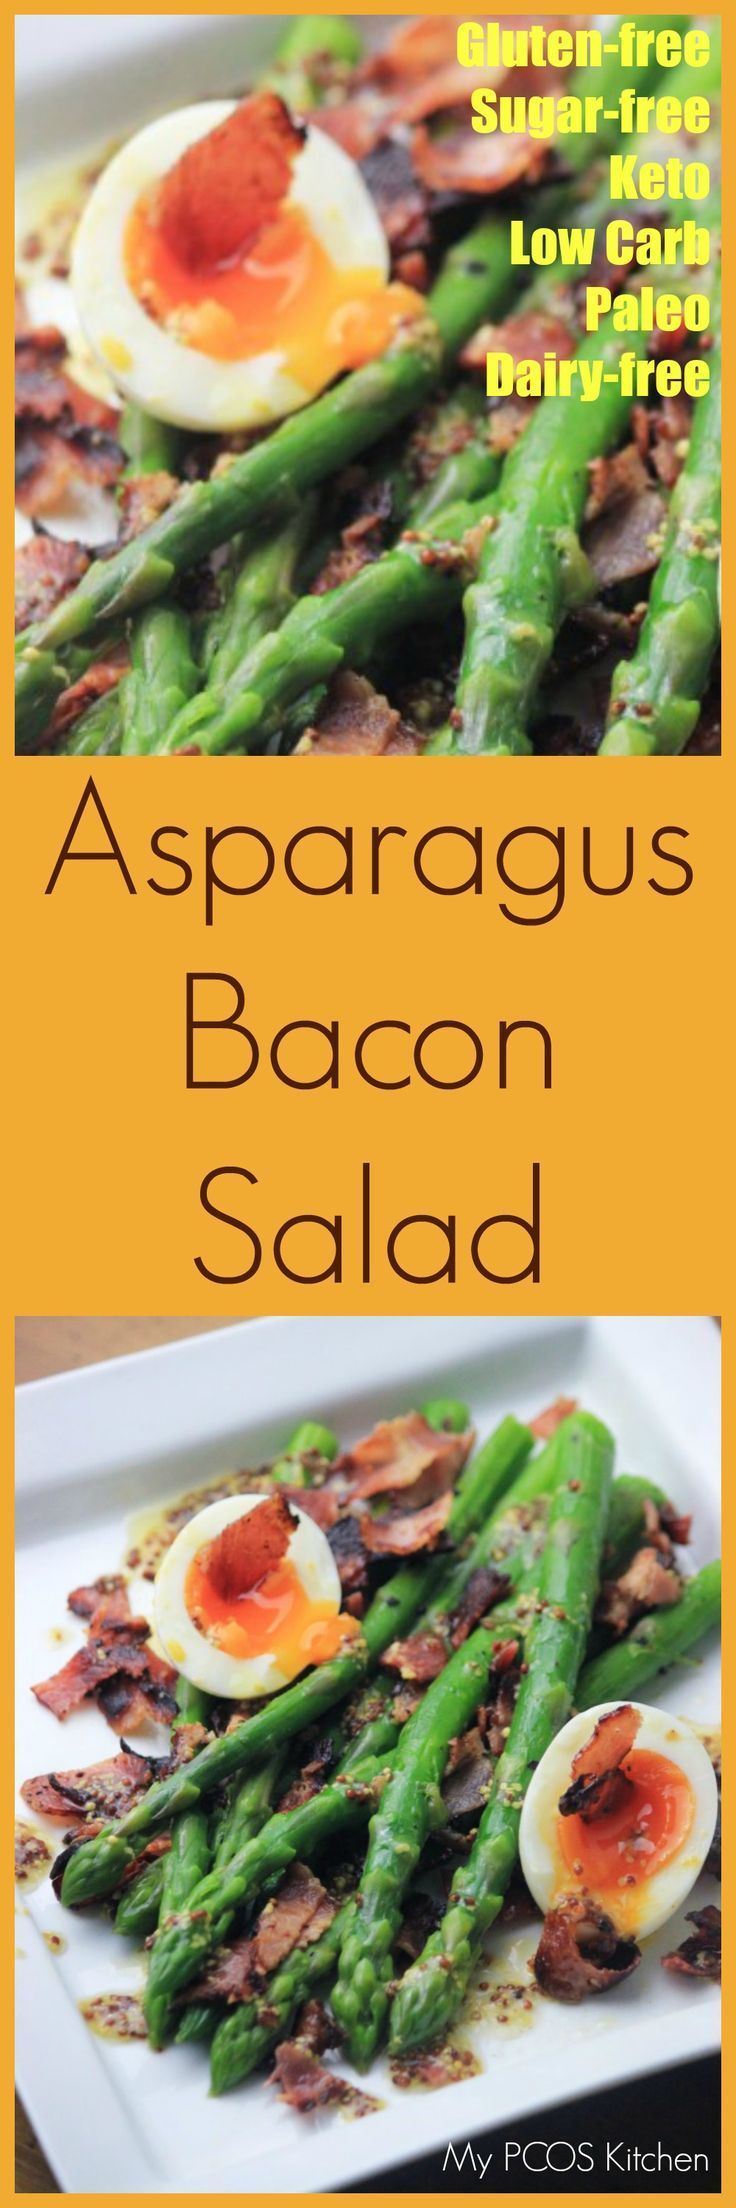 My pcos kitchen asparagus bacon salad an amazing